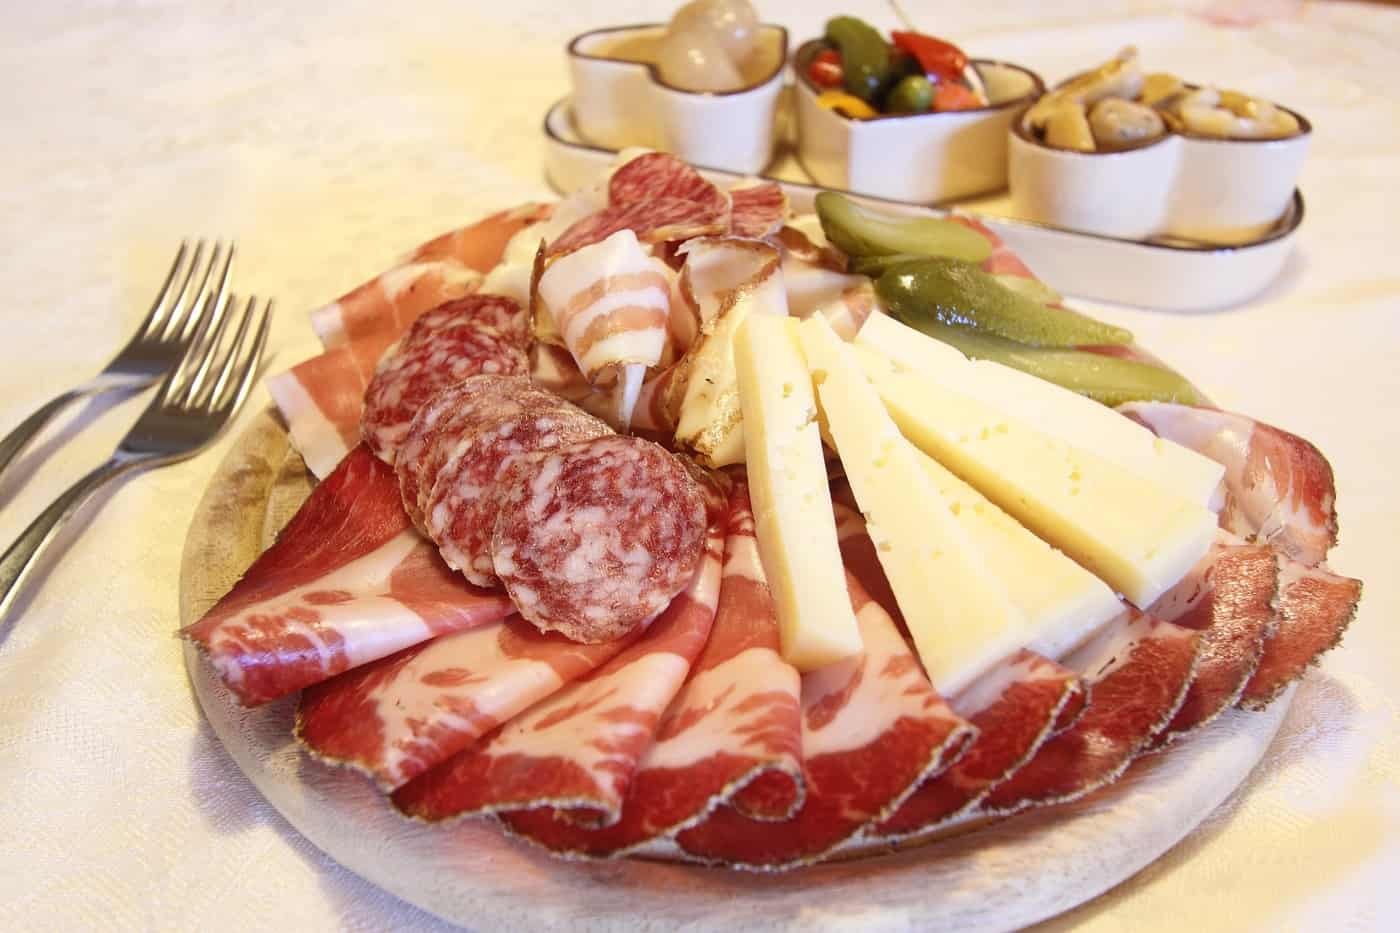 Charcuterie board meat and chees